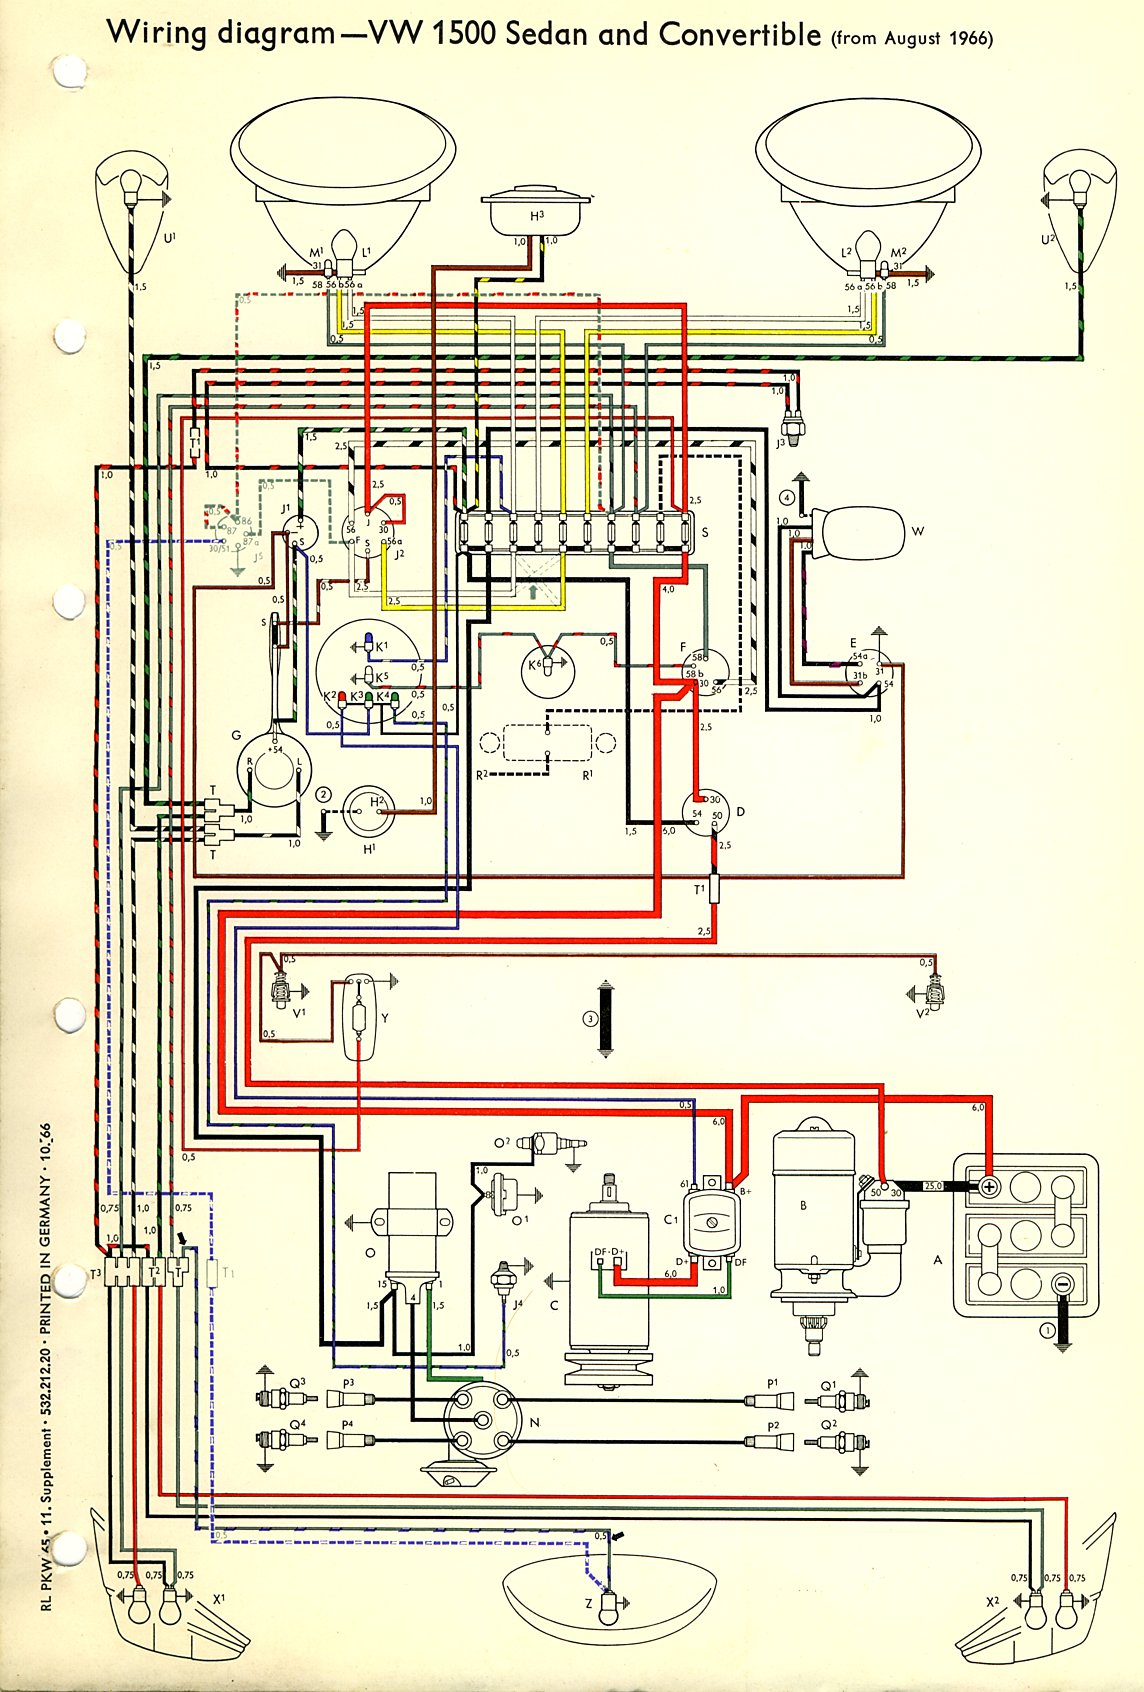 1973 Thing Wiring Diagram Great Installation Of Way Switch Moreover 3 Light Beetle Todays Rh 17 1 10 1813weddingbarn Com Automotive Diagrams Schematic